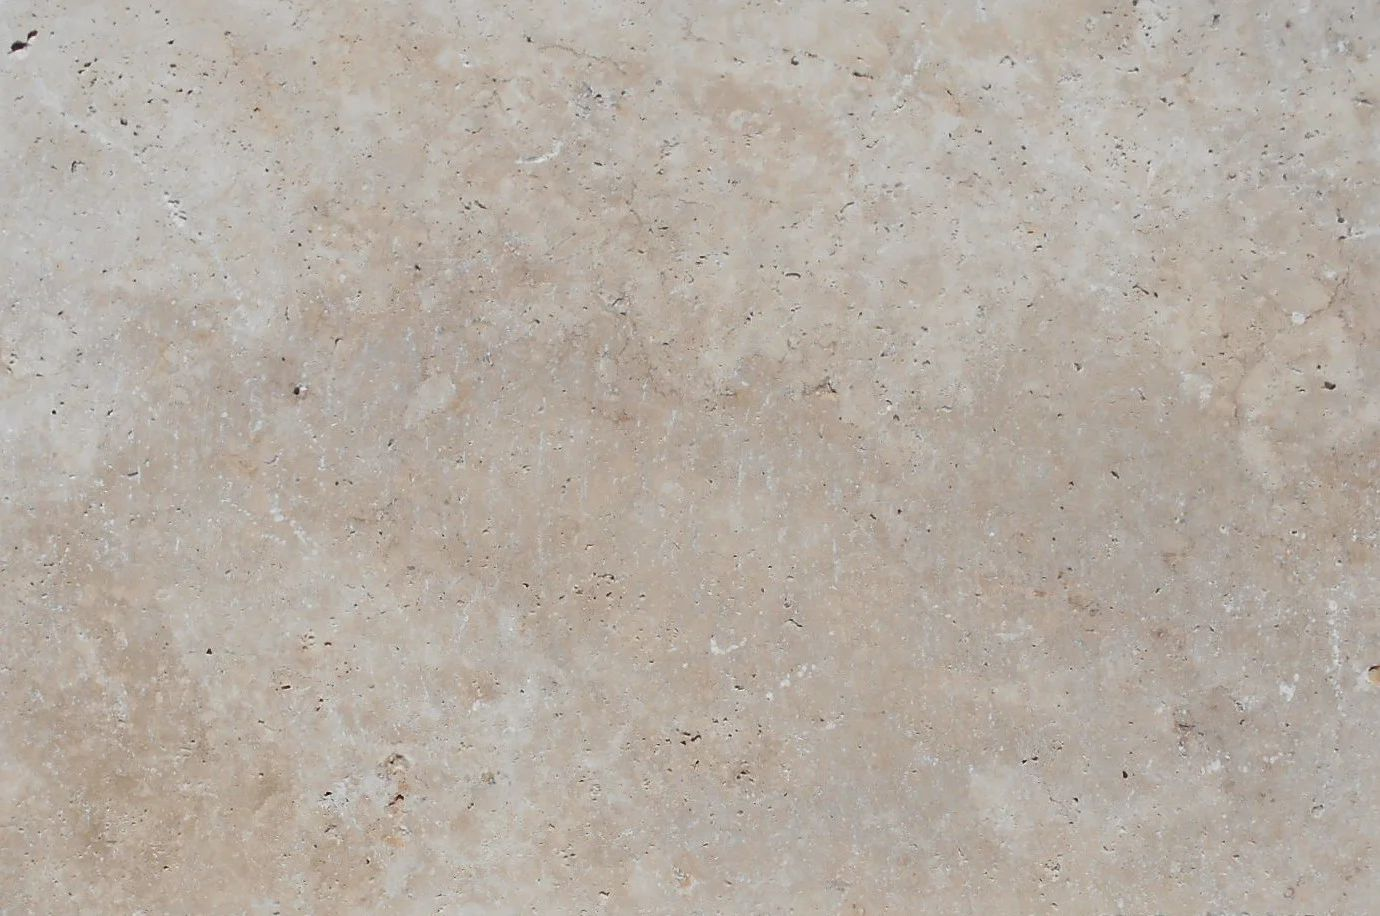 Dalle Travertin Vieilli Classic Beige Marron L 40 6 X L 61 Cm X Ep 12 Mm Leroy Merlin